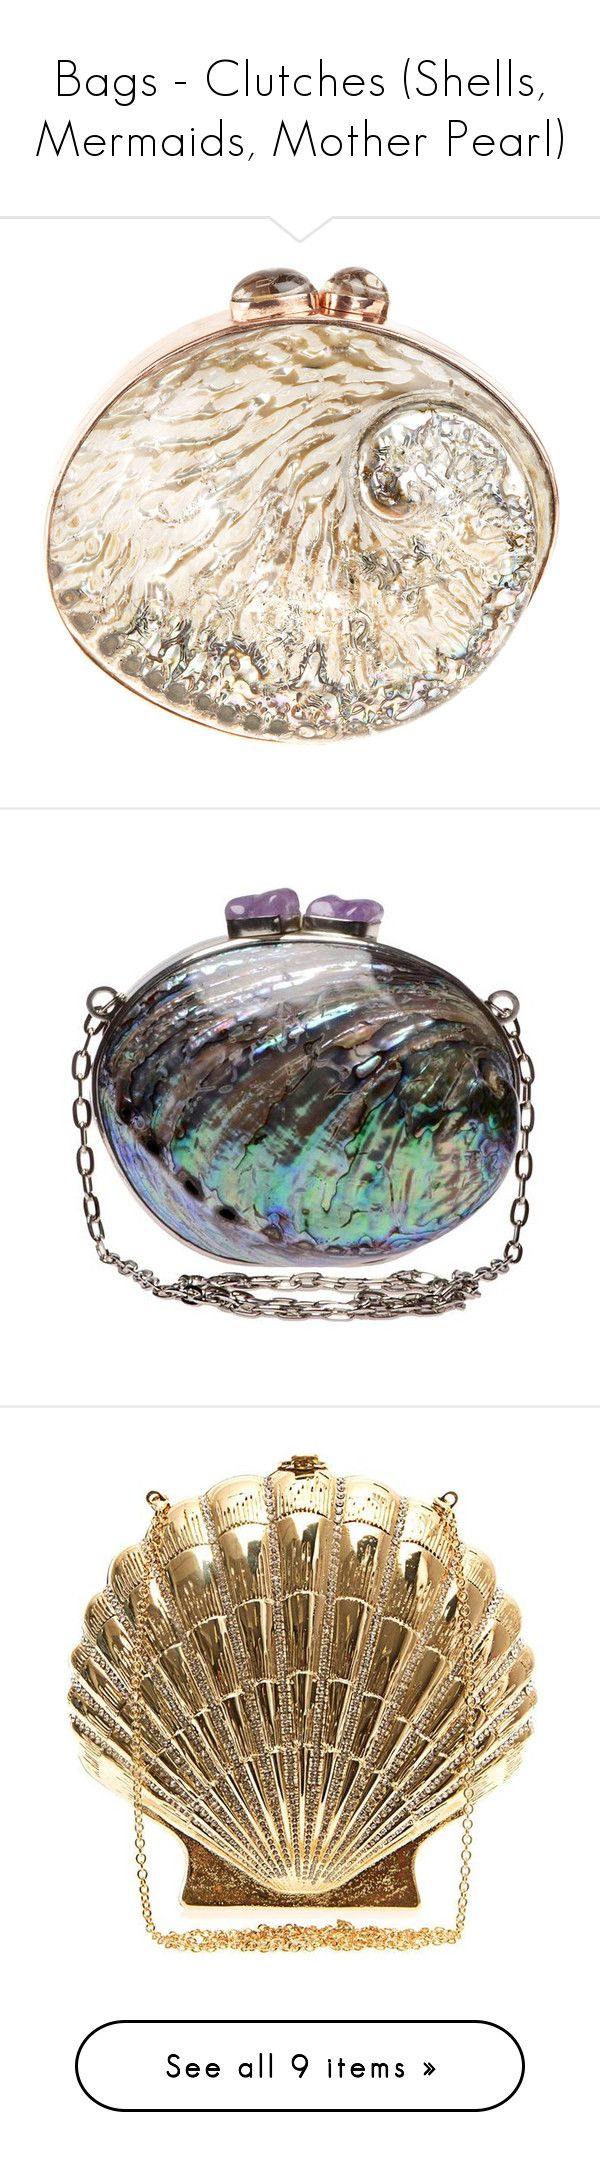 """""""Bags - Clutches (Shells, Mermaids, Mother Pearl)"""" by giovanna1995 ❤ liked on Polyvore featuring bags, handbags, clutches, purses, blue, accessories, blue handbags, clasp purse, seashell purse and wood handbag"""